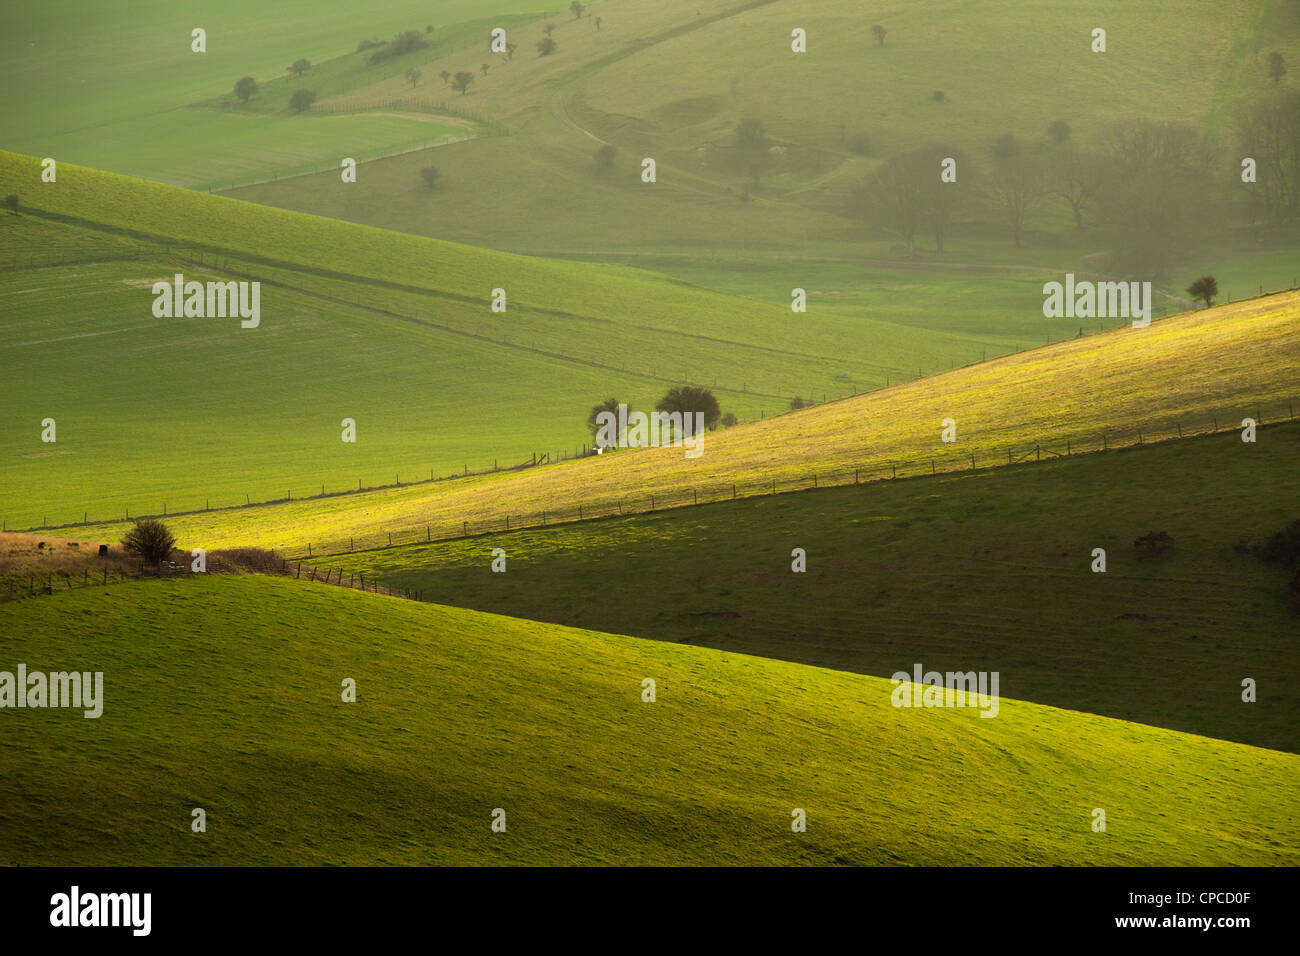 Winter afternoon in South Downs National Park, East Sussex, England. - Stock Image